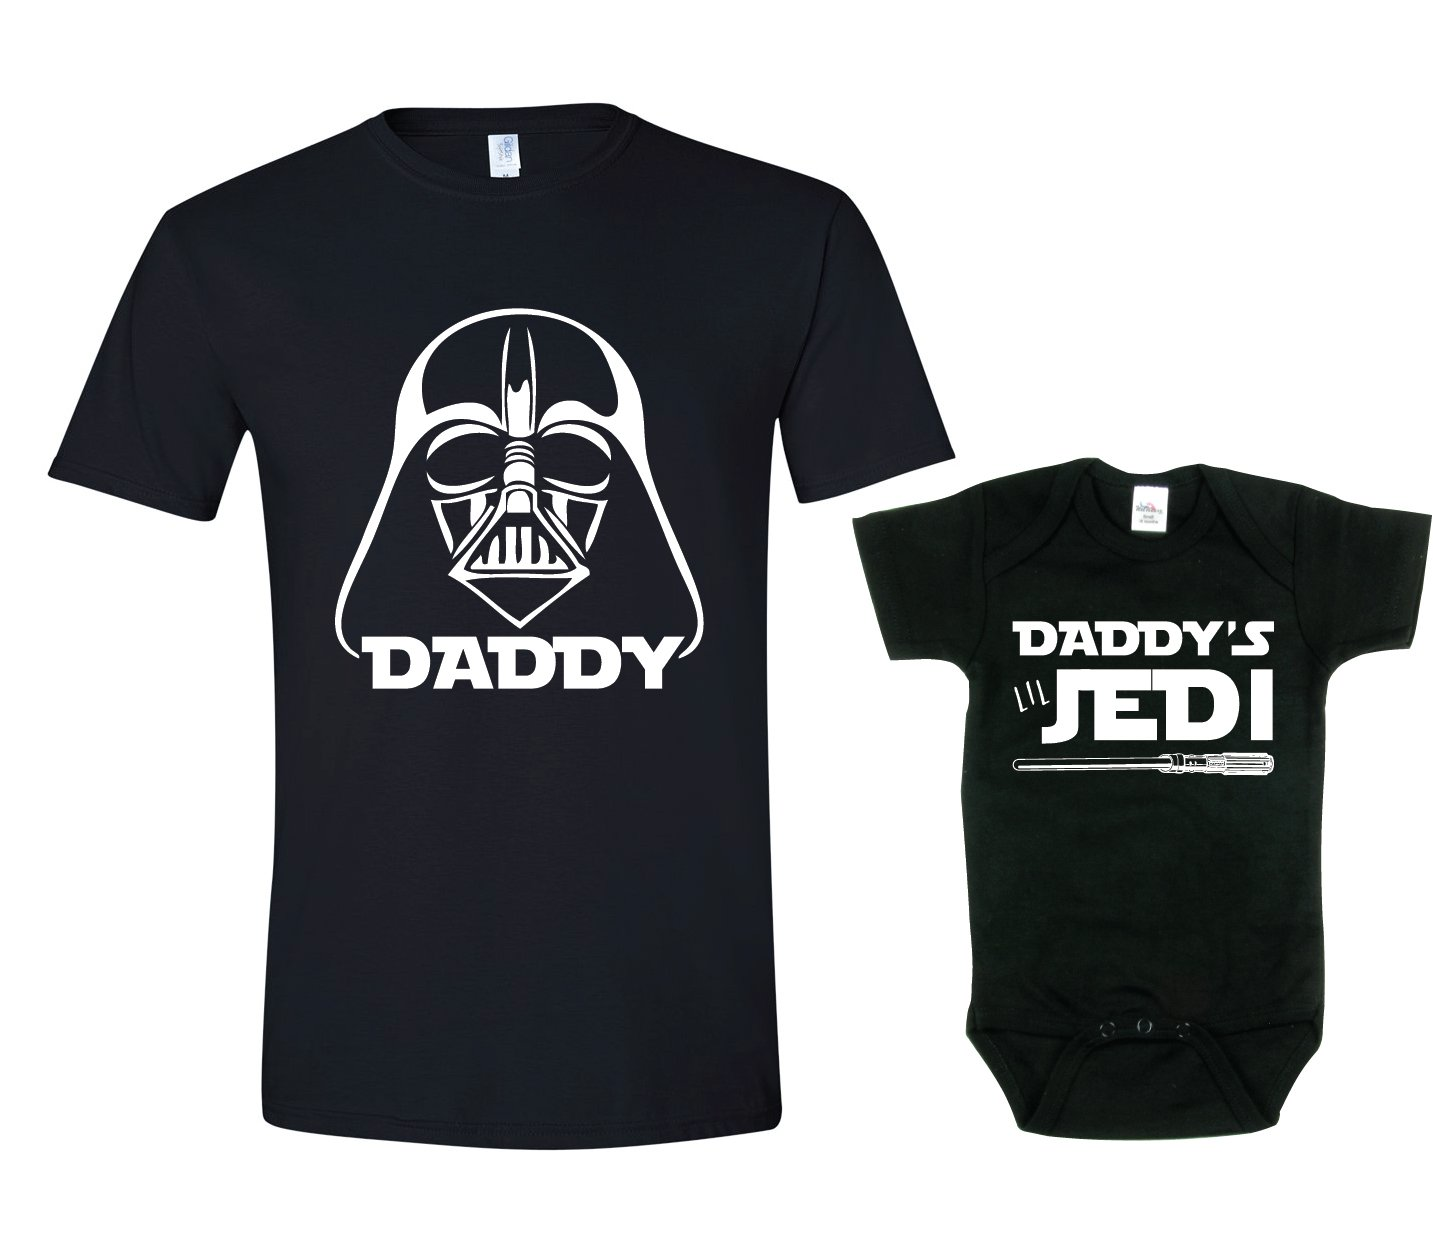 Inspired by Star Wars Shirt Set, Jedi Bodysuit for Baby Boy,Darth & Jedi - Black,Mens (X-Large) & 6-12 Month